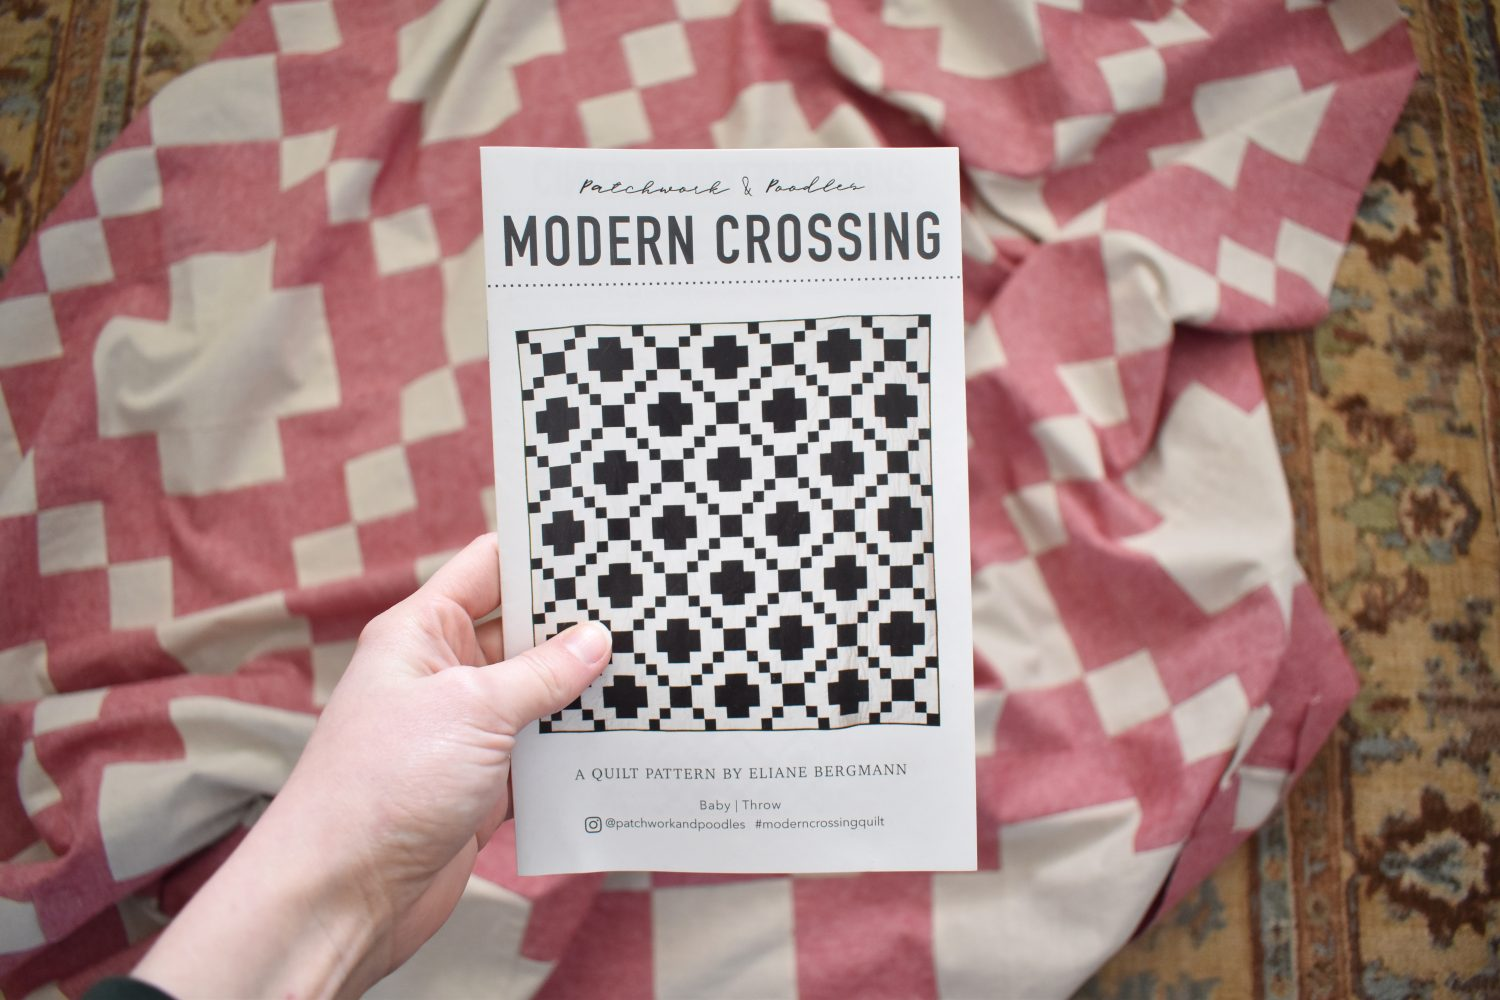 Using Modern Crossing quilt pattern to make a quilt coat